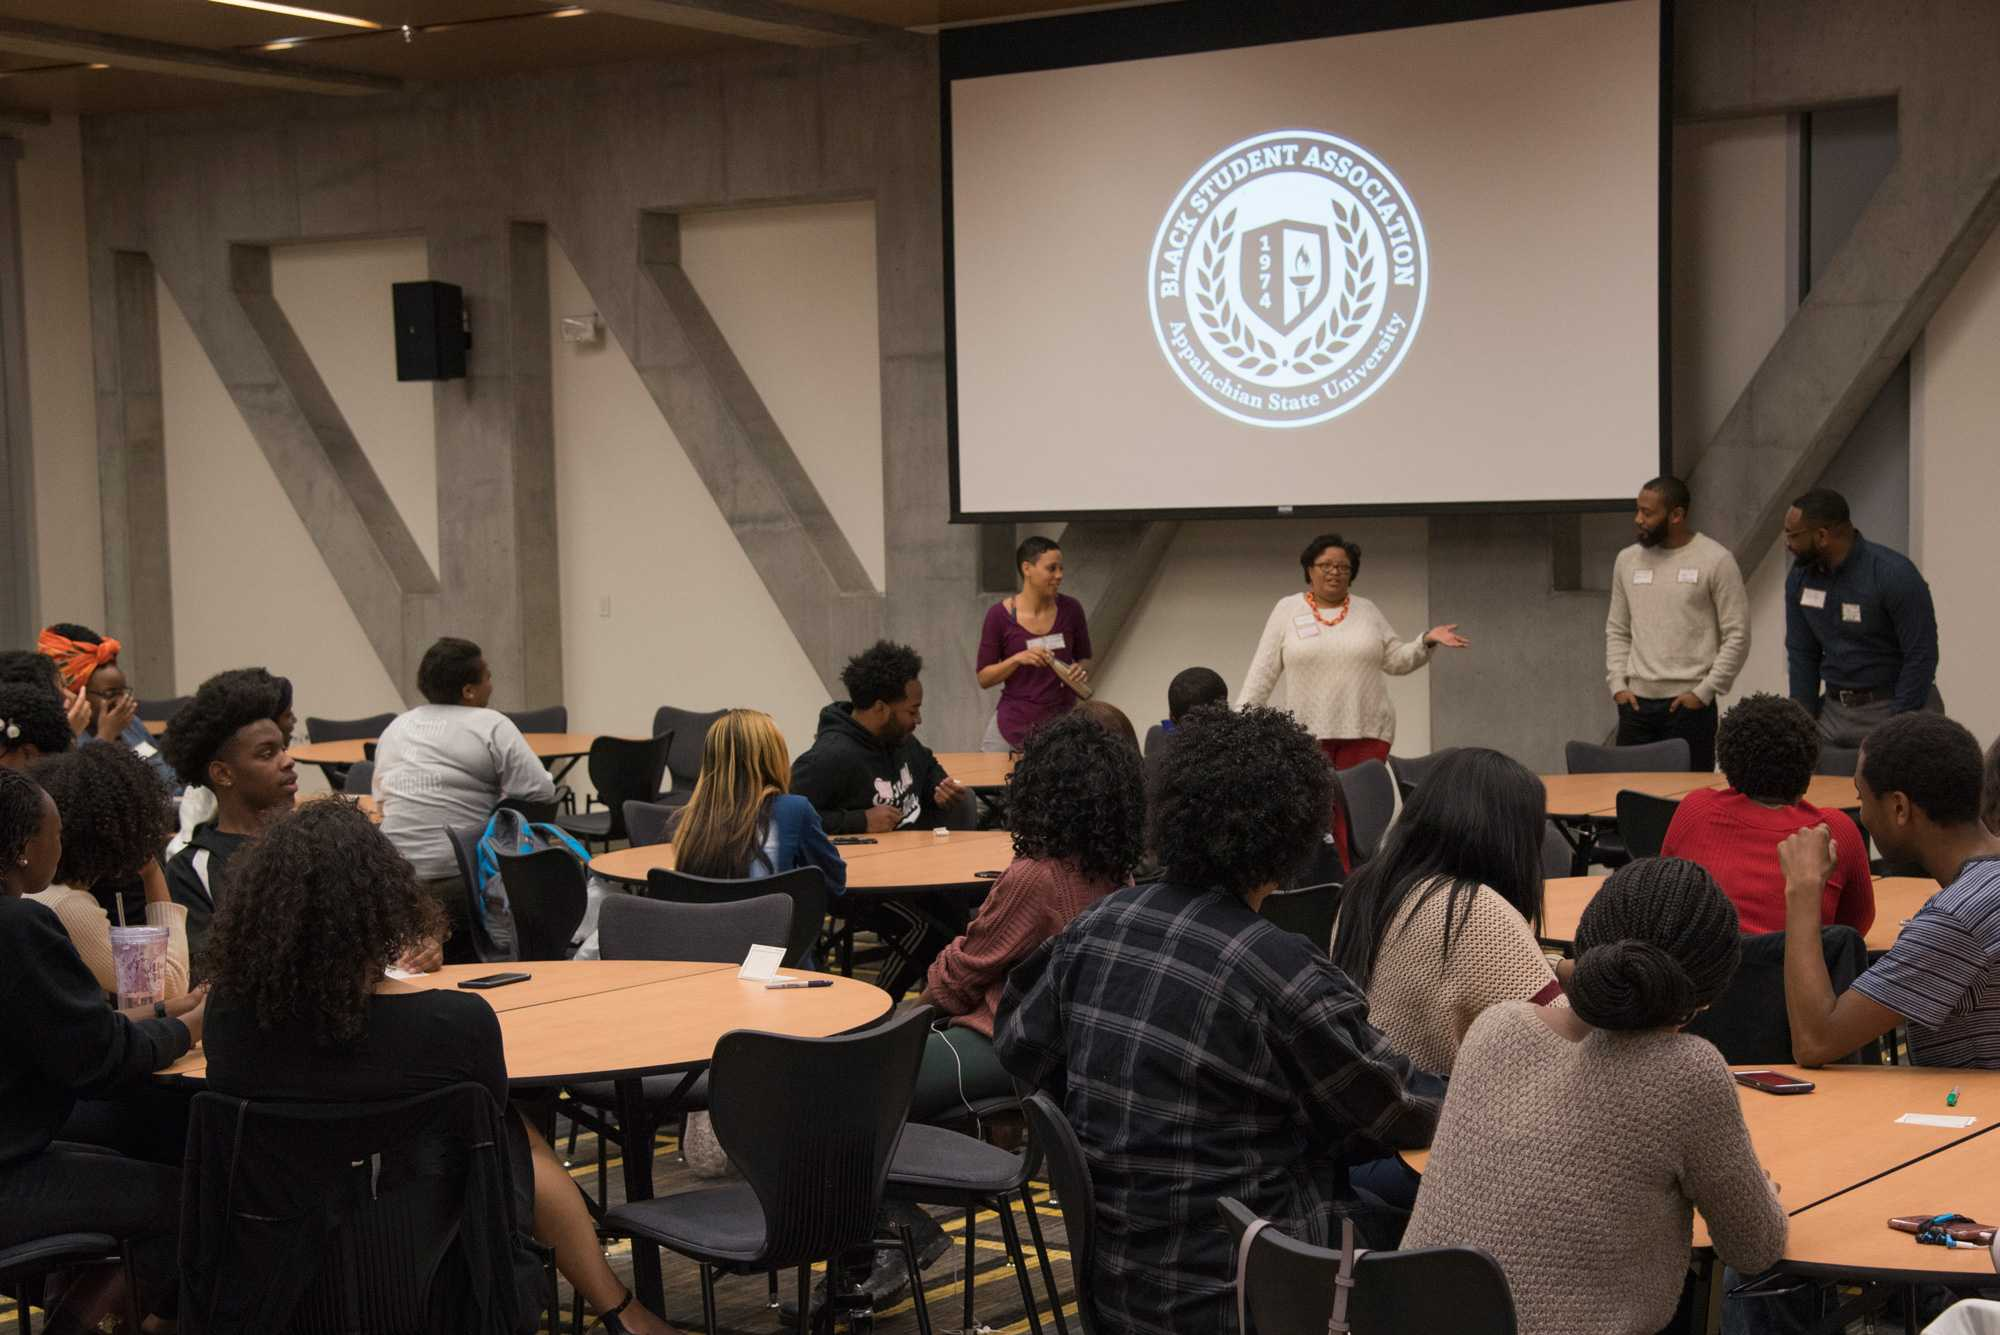 Students+gather+for+the+Black+Student%2C+Faculty+and+Staff+Mixer+in+Plemmons+Student+Union.+The+event+was+put+on+by+the+Black+Student+Association.